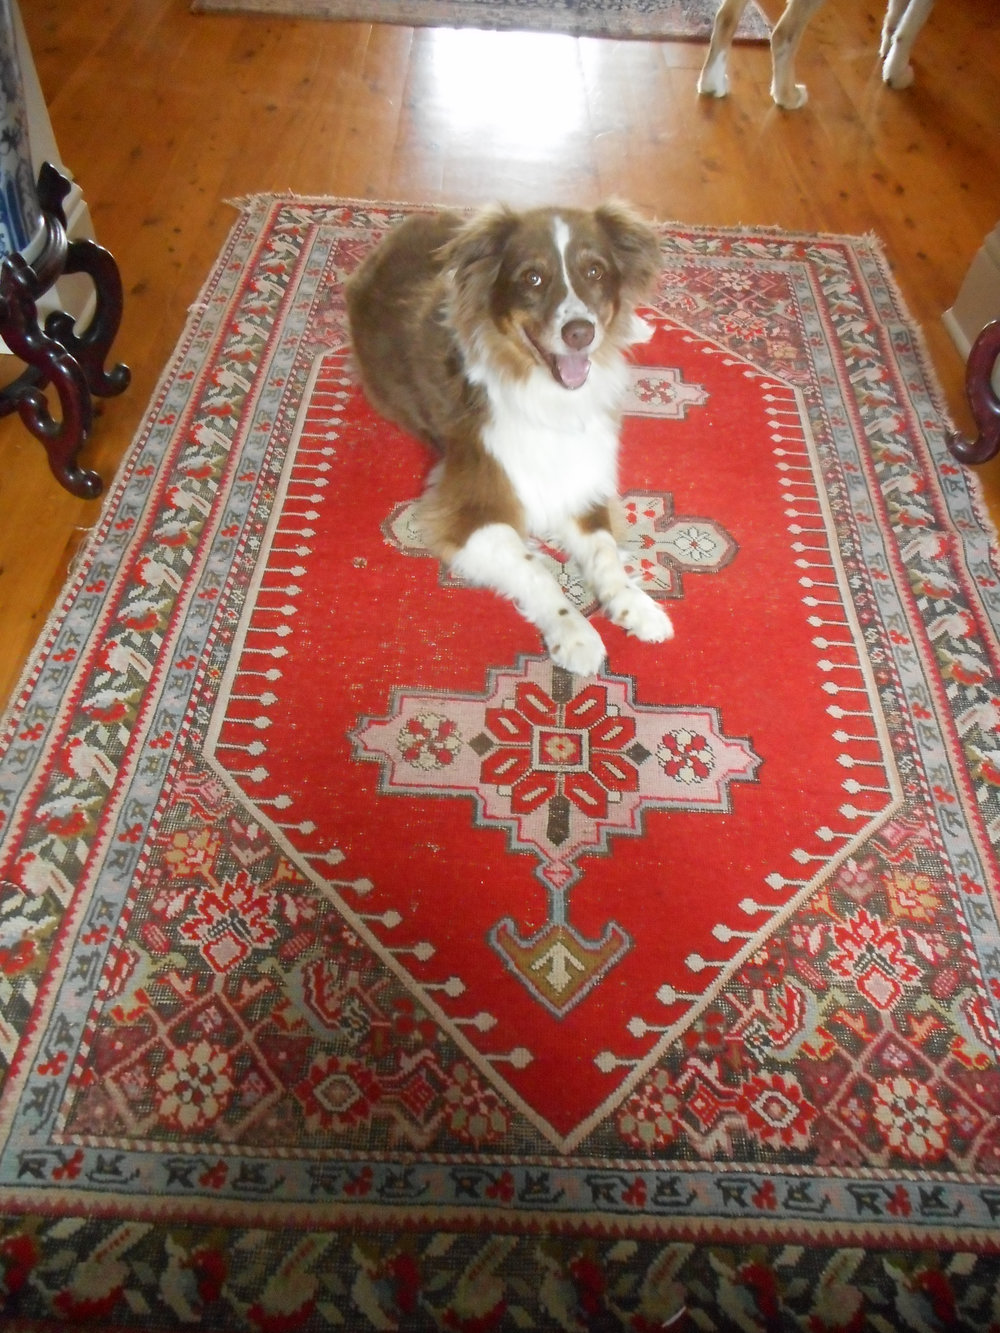 Jessie is clearly partial to antique rugs